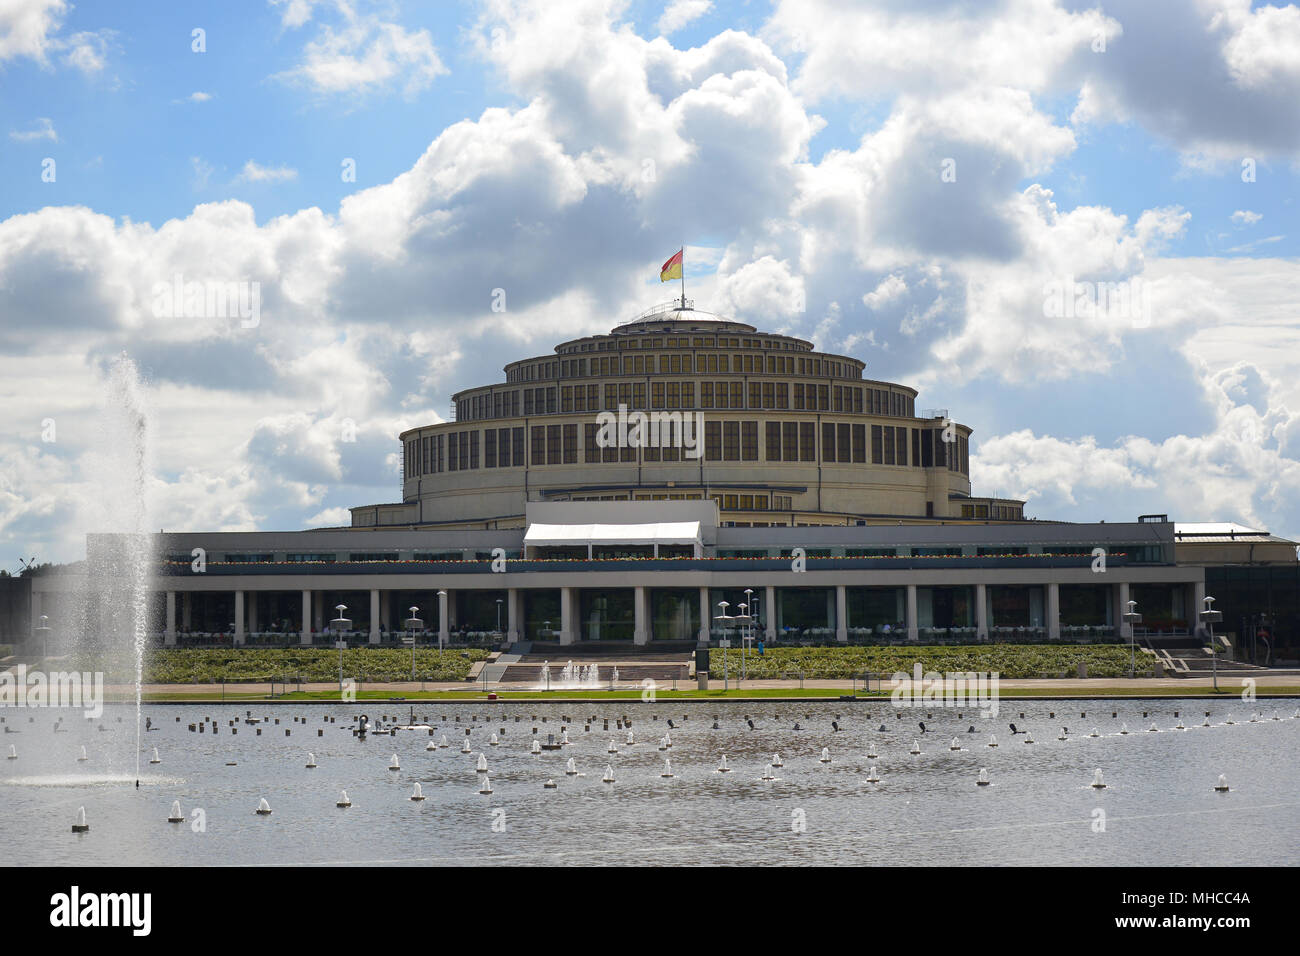 The famous UNESCO World Heritage site 'Centennial Hall' or 'Jahrhunderhalle' in Wroclaw, Poland. The architect was Max Berg, it was built in 1911–1913 Stock Photo